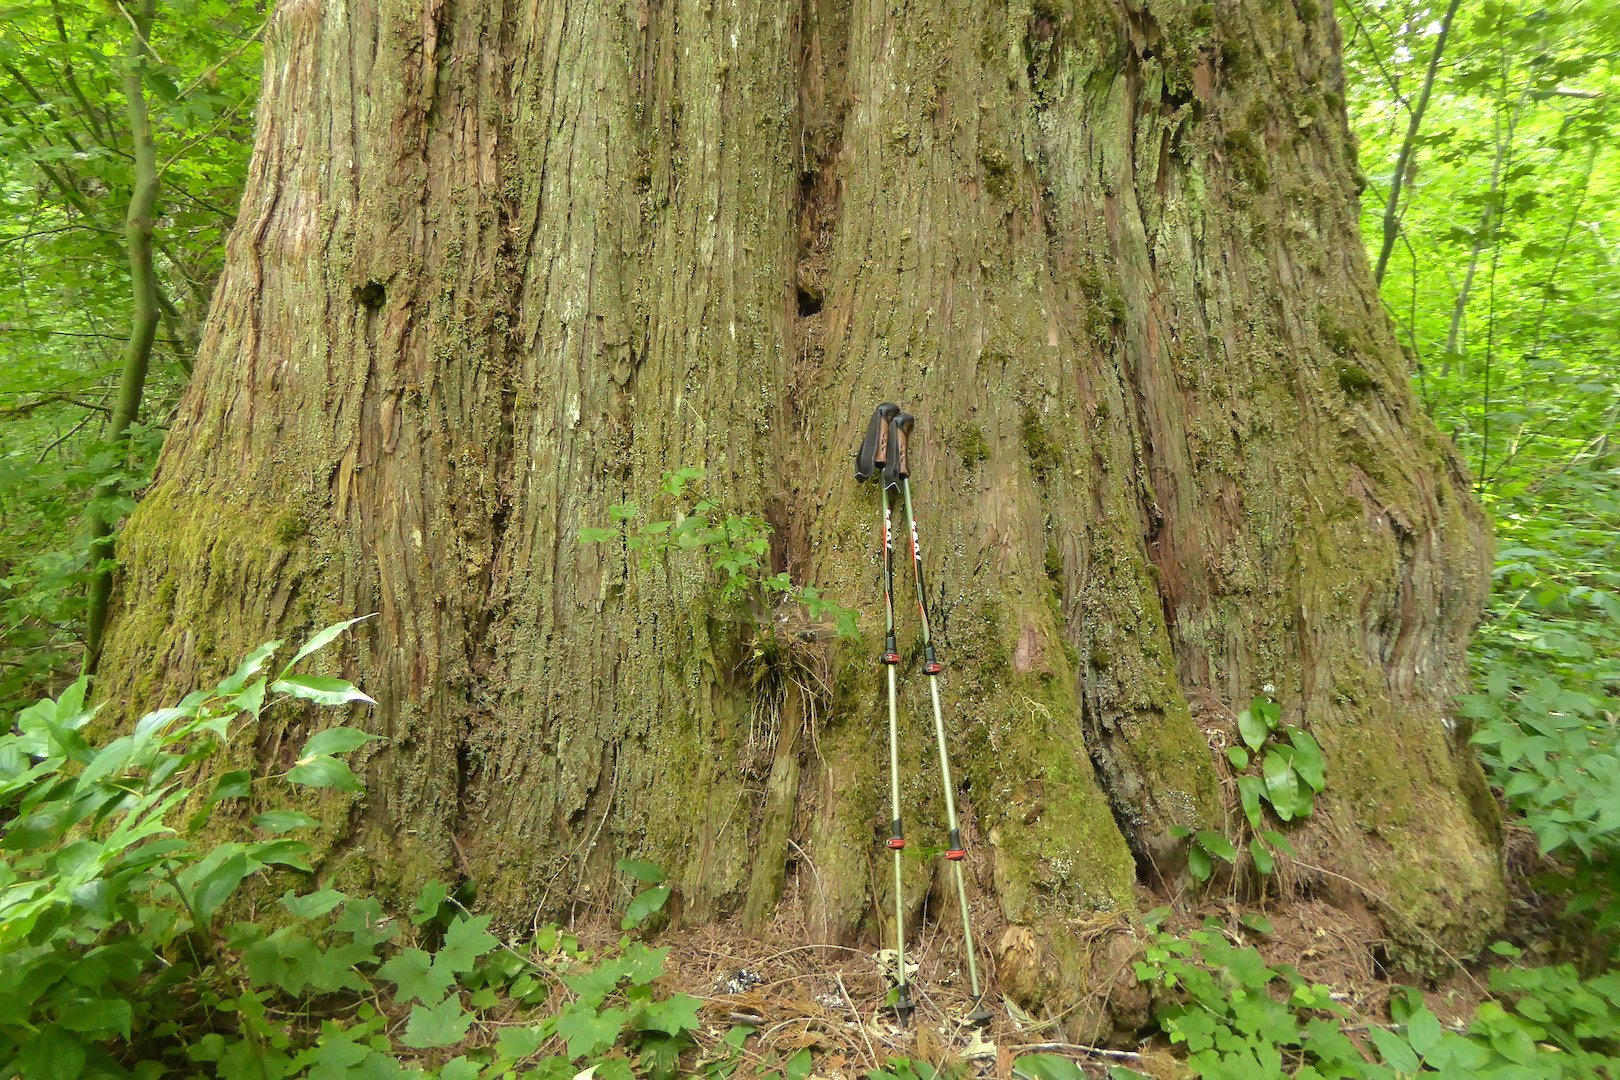 bole of large tree with two hiking poles leaning against it